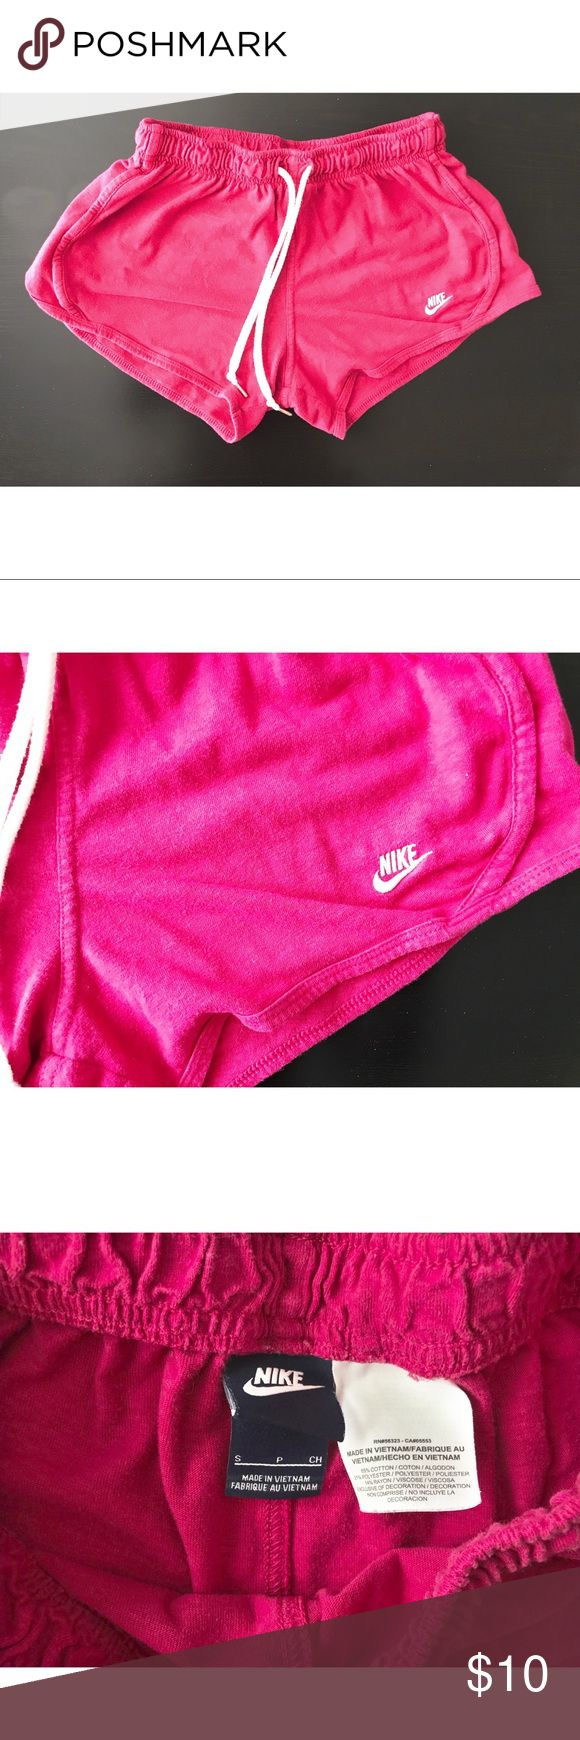 Pink nike cotton shorts These shorts have been worn but no longer fit me. They are a small however got more like an XS! These shorts were bought from the Nike store. Nike Shorts